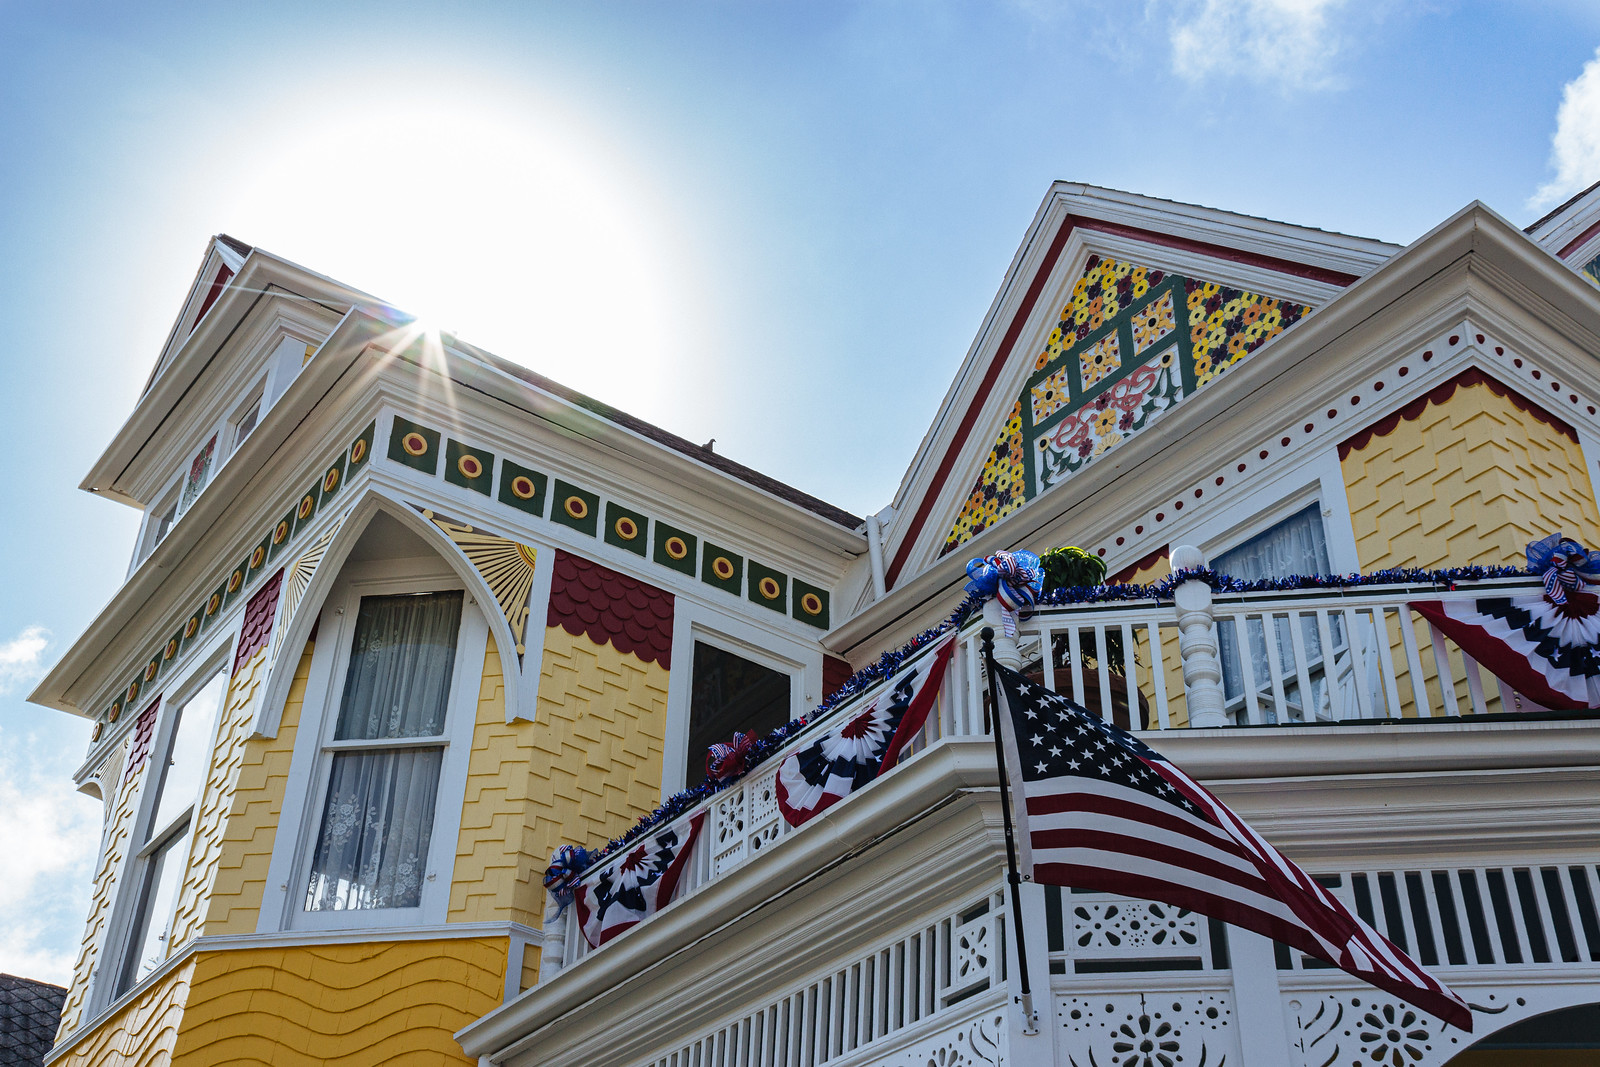 Victorian home with yellow singles on the walls and patriotic banners and flags